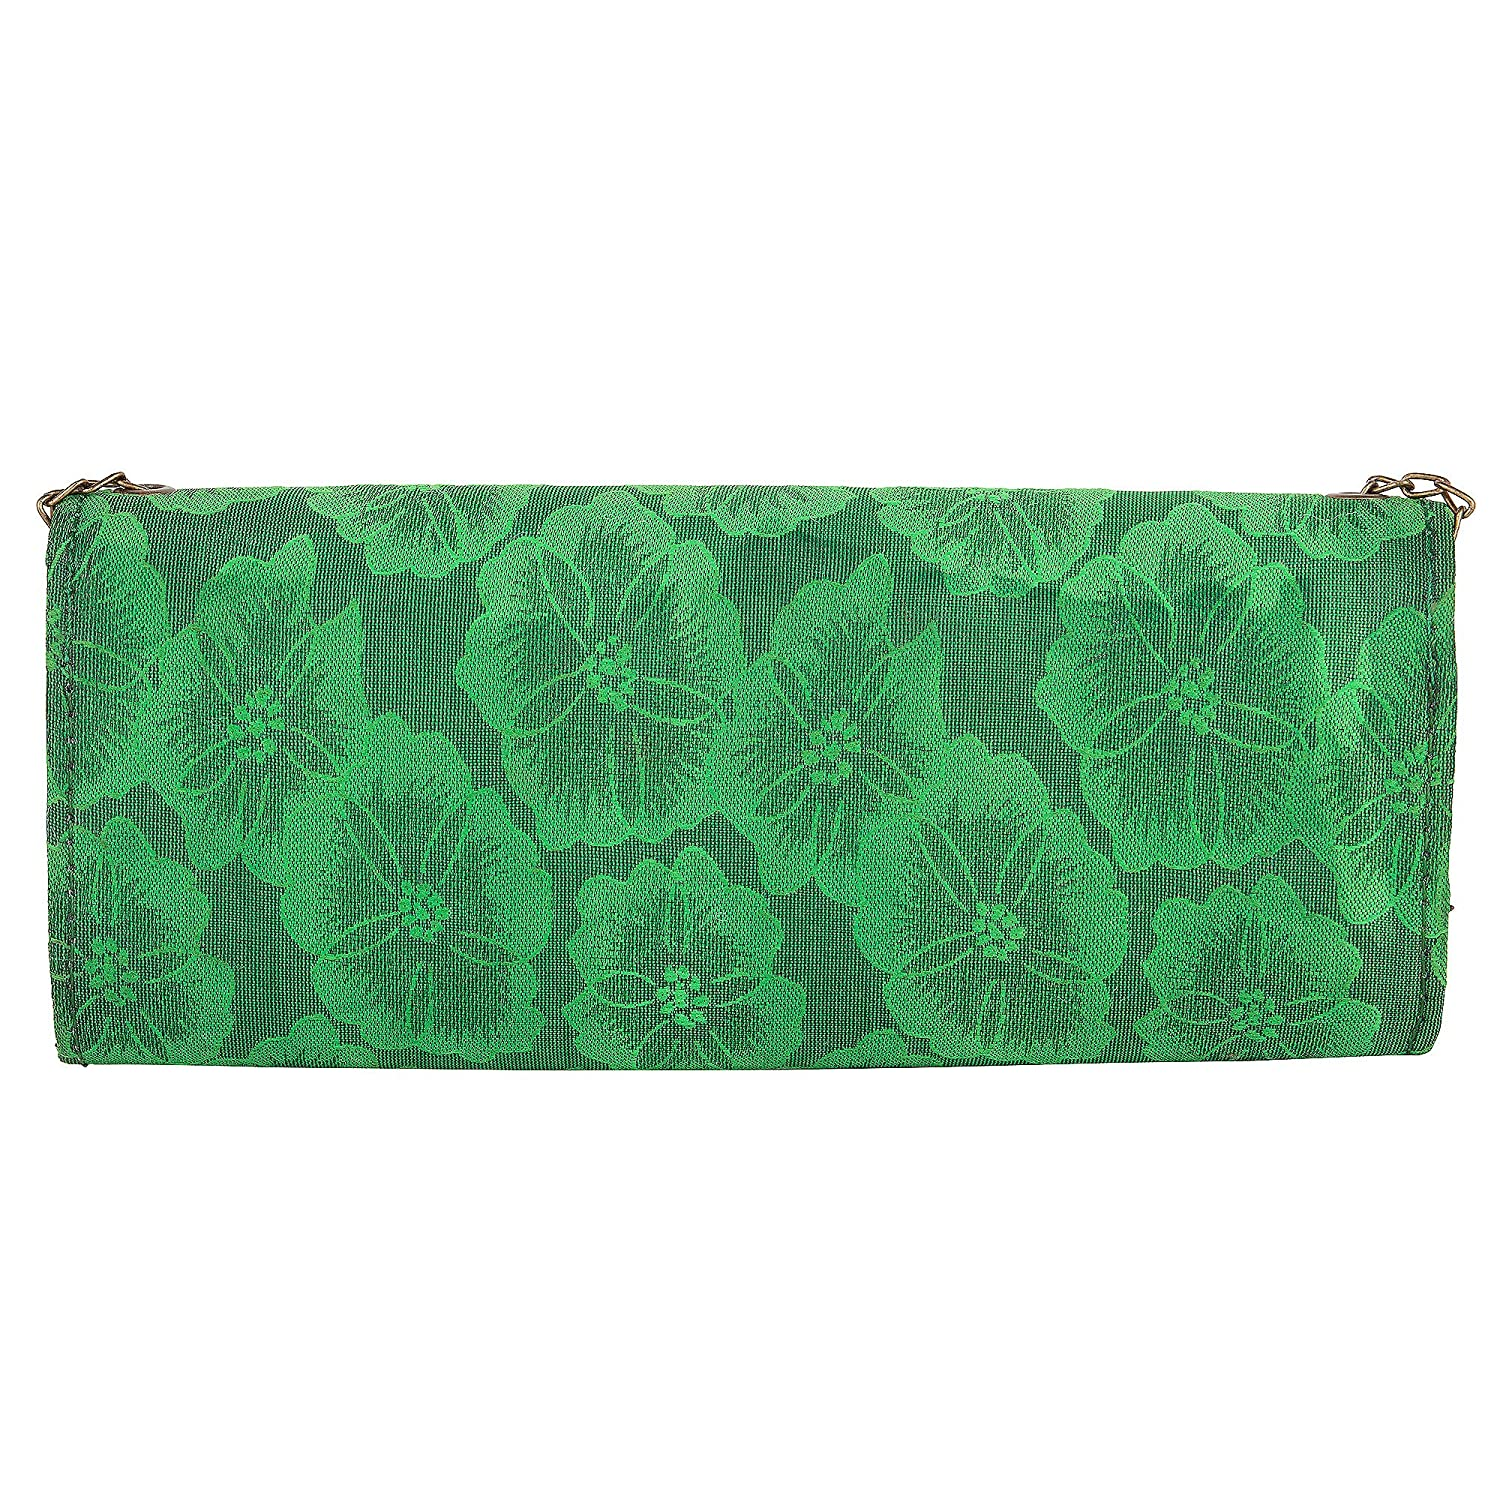 JaipurSe Dark Green Flapover Clutch Party Wear Ladies Evening Clutch Handbag with Drop-in Chain Shoulder Strap